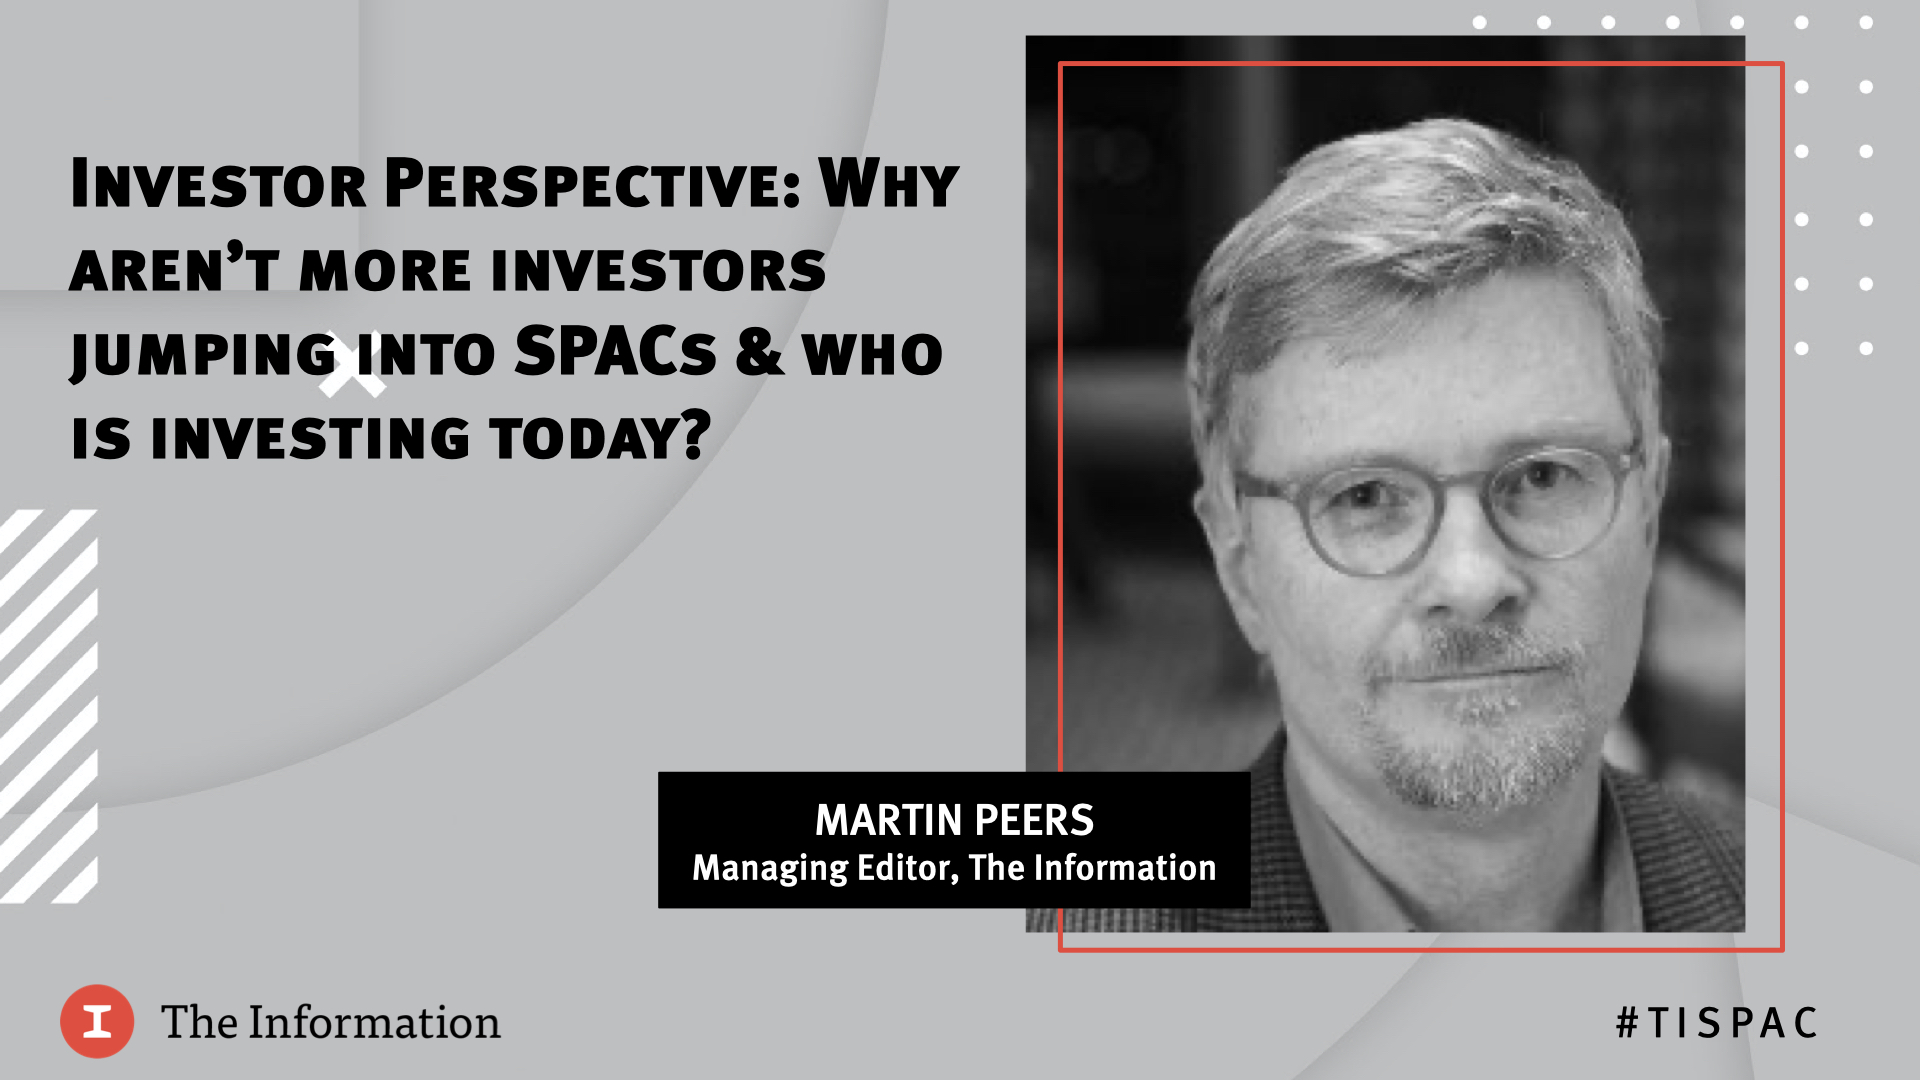 SPAC 2020 - Investor Perspective: Why aren't more investors jumping into SPACs and who is investing today?